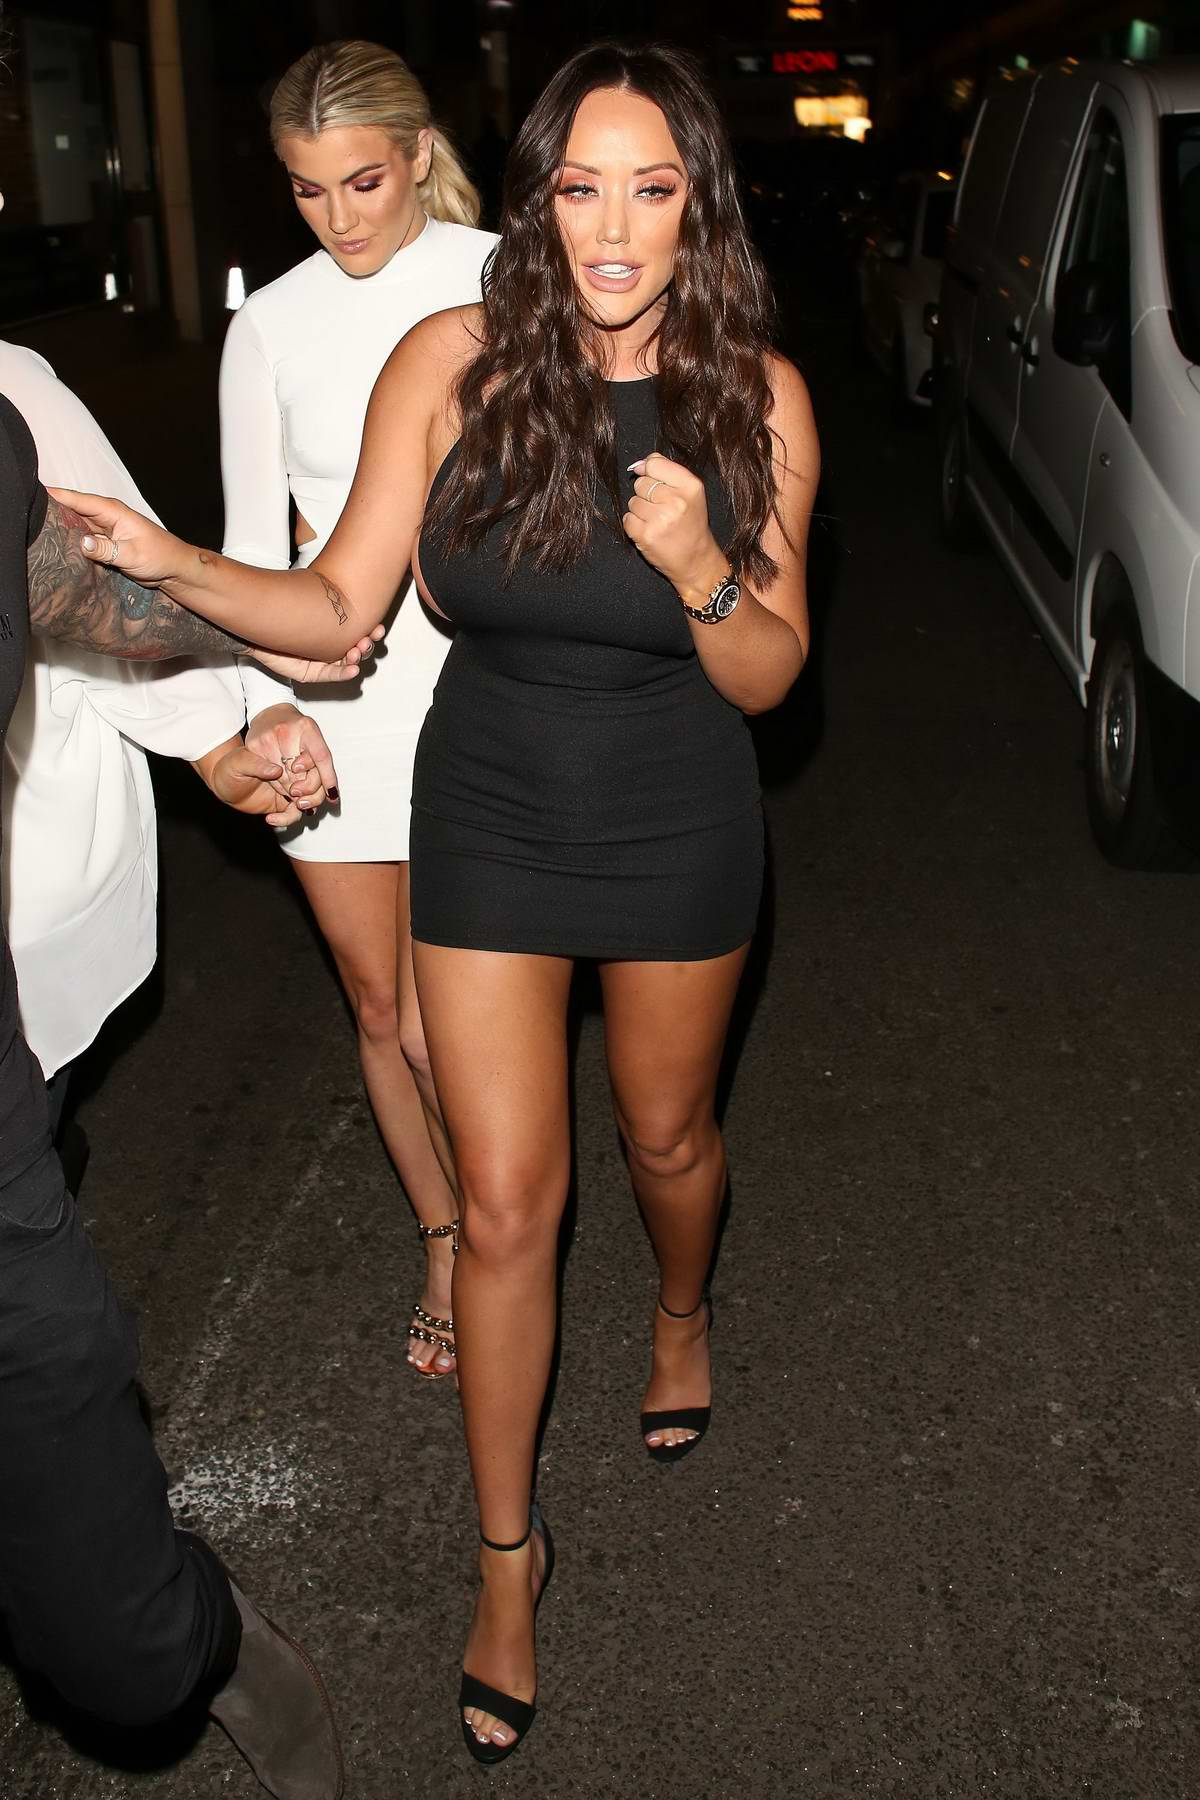 Charlotte Crosby arrives at the In The Style Valentines Party at Libertine Nightclub in London